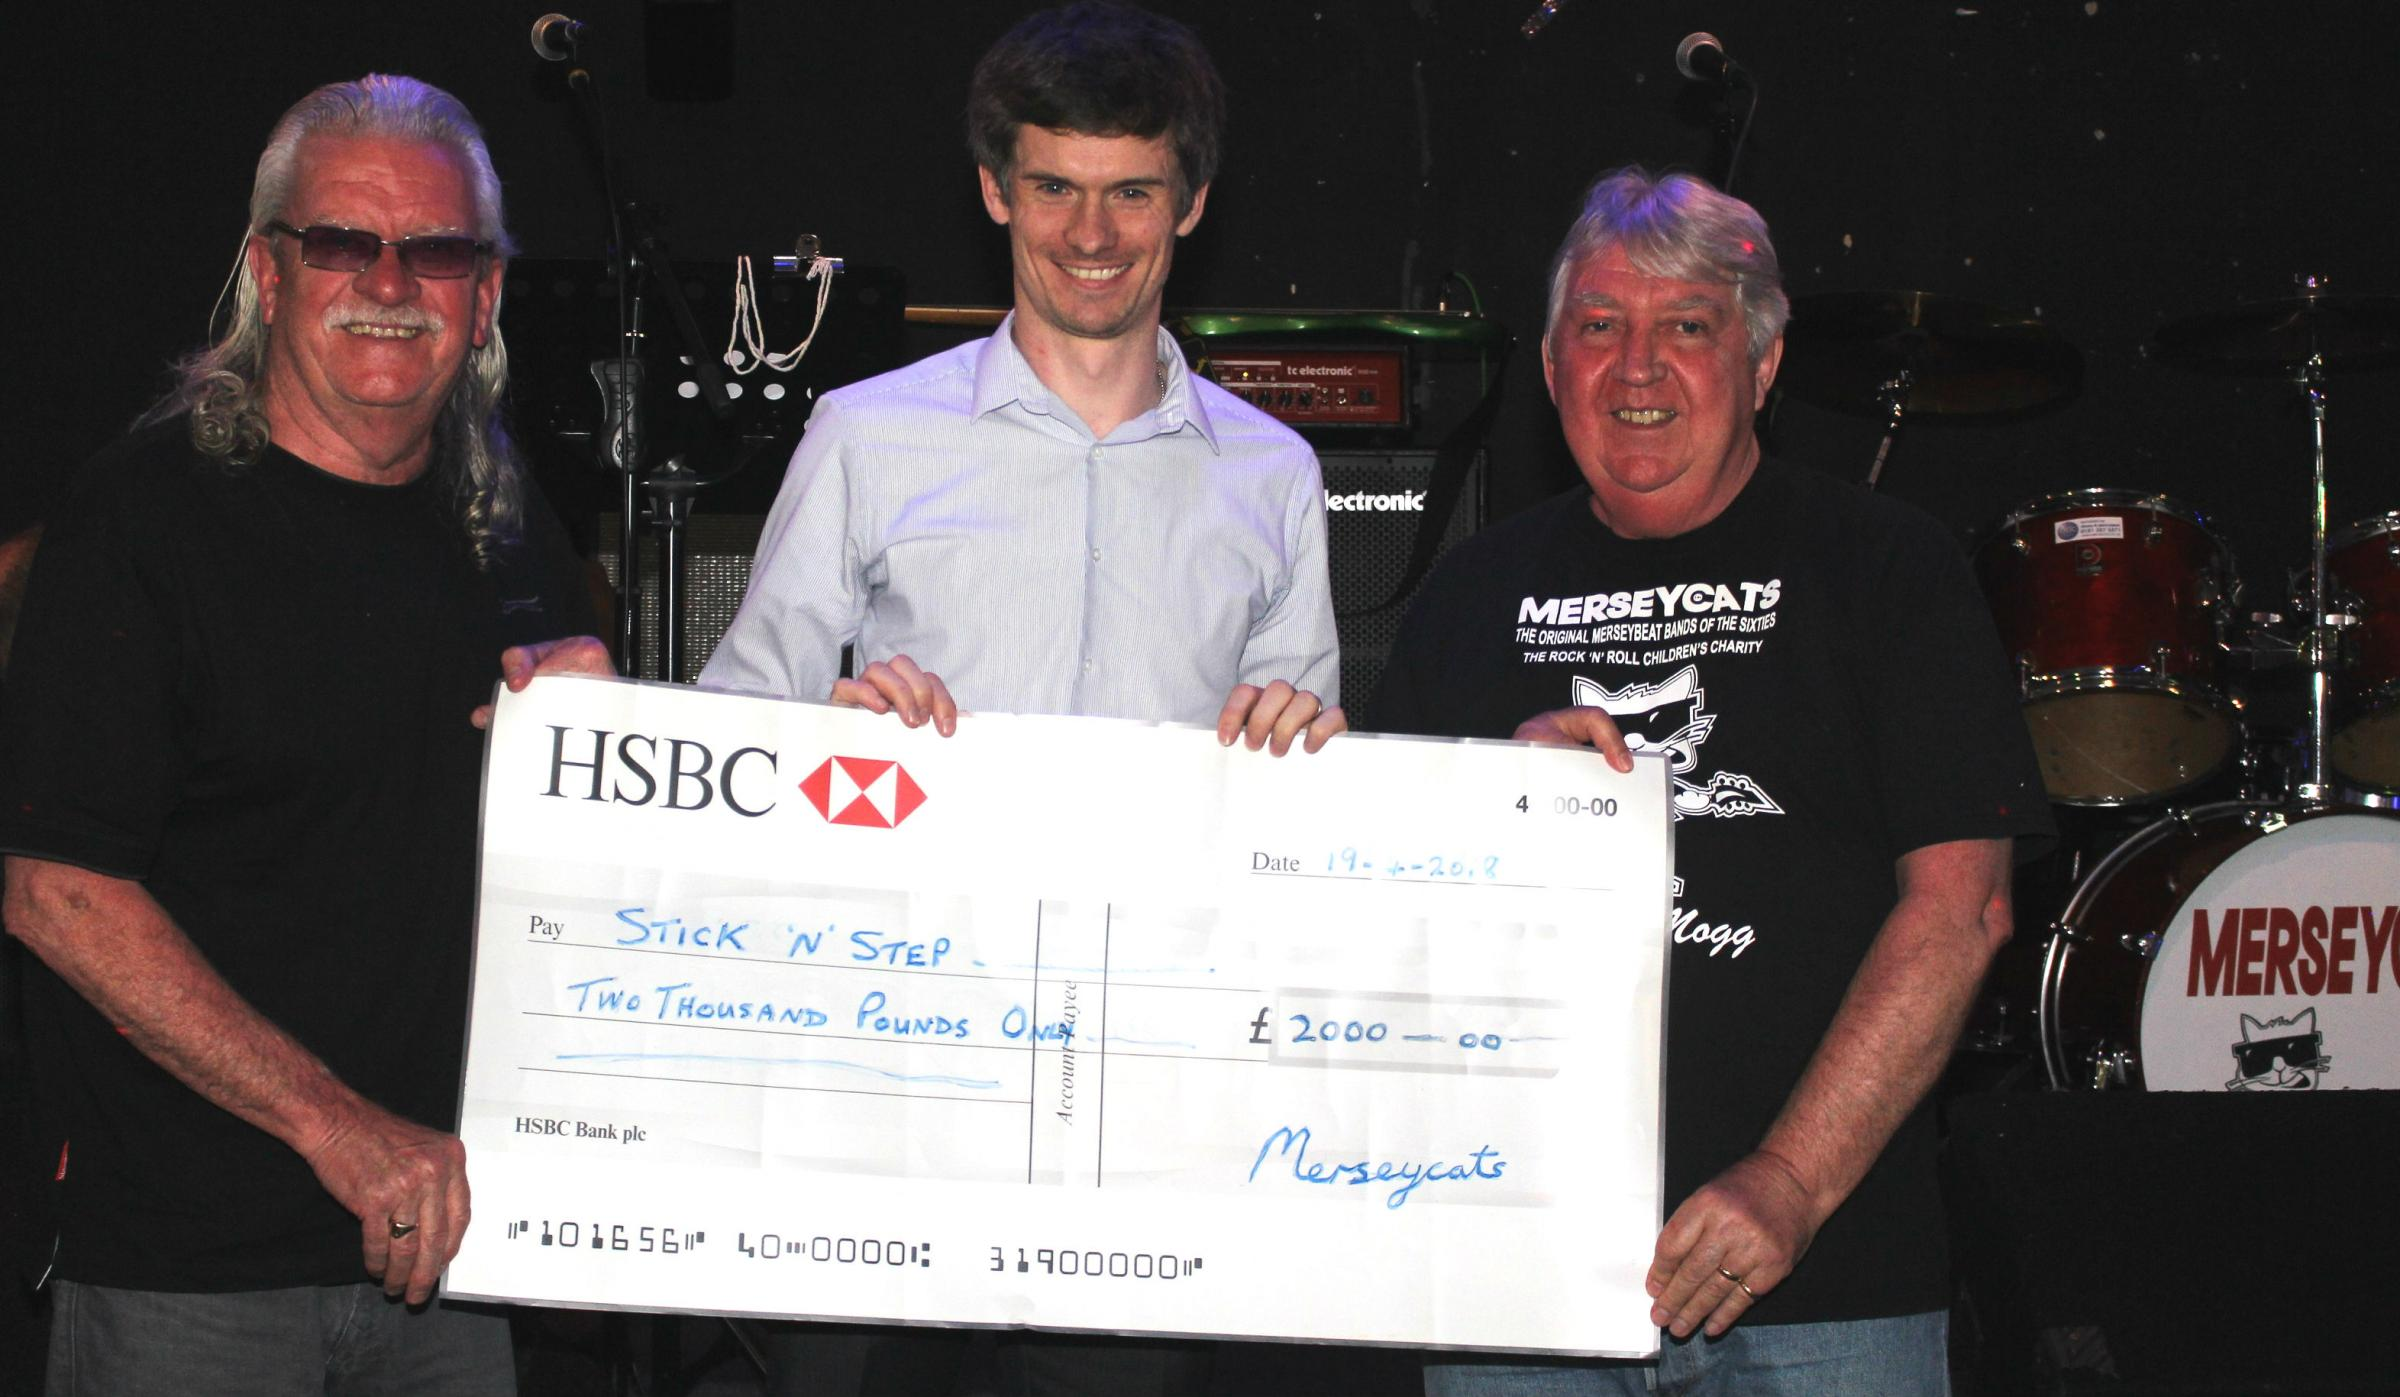 Left to right: Norman Petherbridge (Merseycats chair), Matt Meaney (Stick'n'Step development manager and Ronnie Hodge (Merseycats secretary) with Stick'n' Step cheque